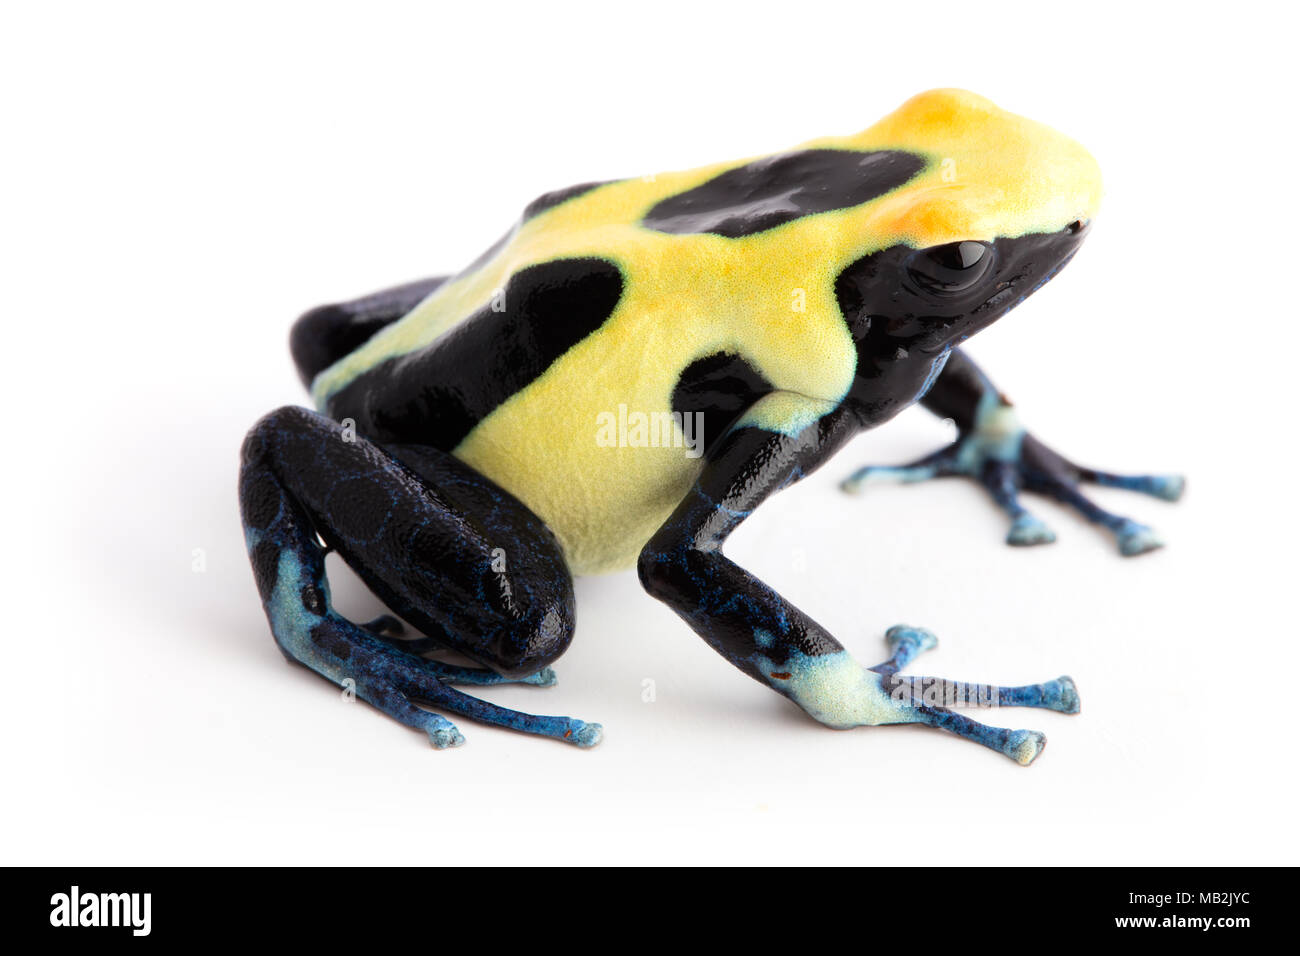 Yellow back poison dart frog Dendrobates tinctorius from the tropical Amazon rain forest of Suriname. Exotic animal isolated on white background. - Stock Image